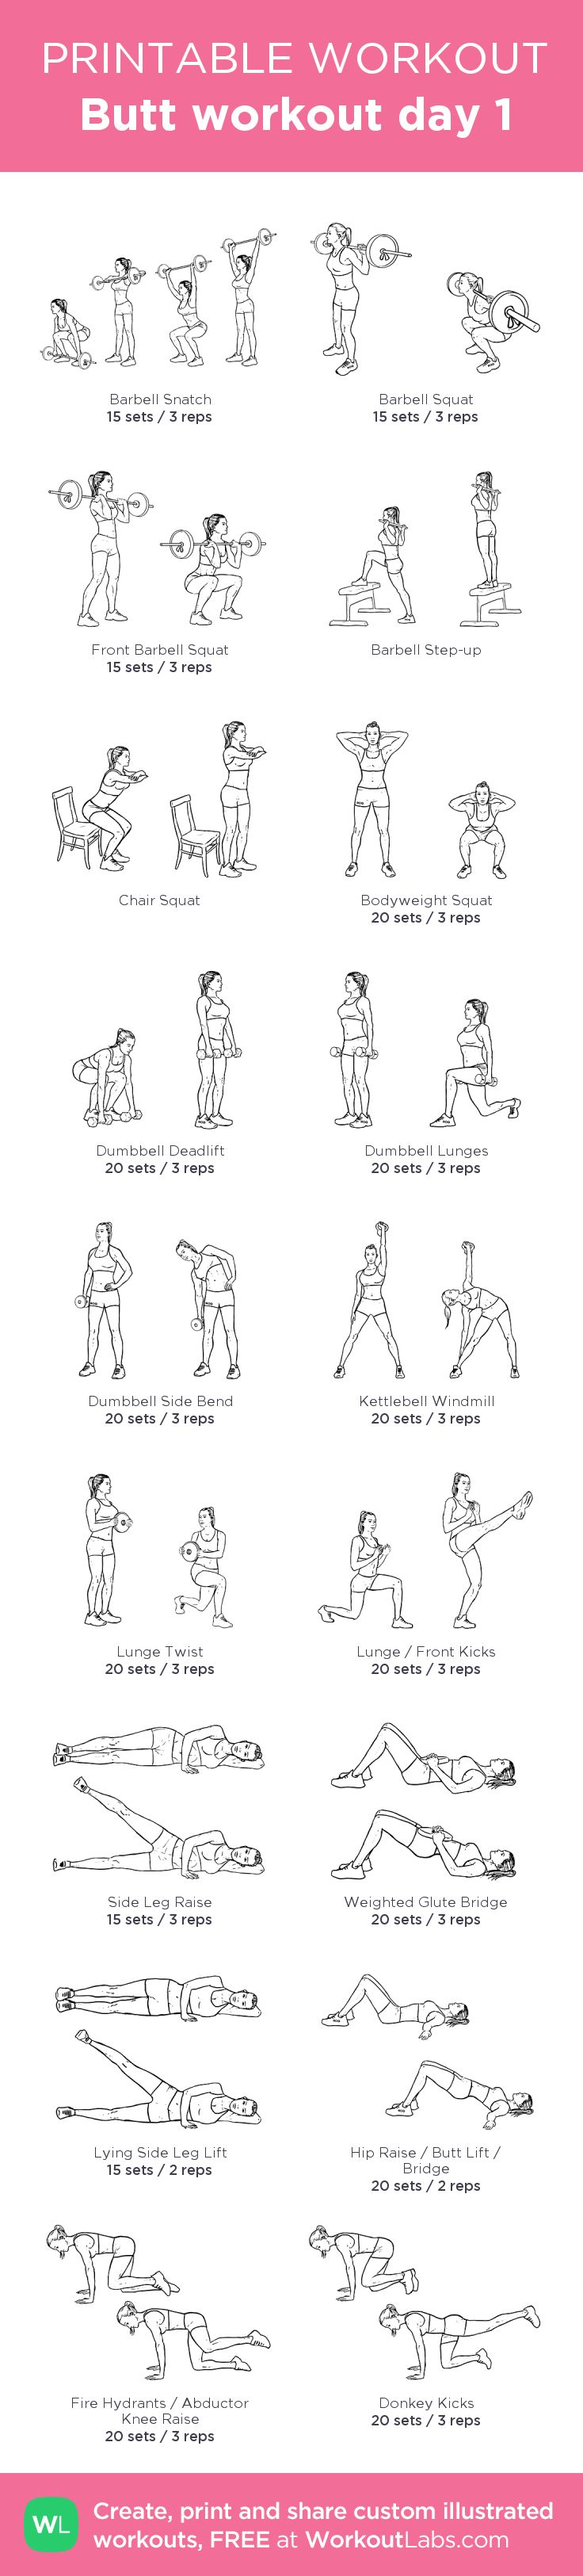 Butt workout day 1:my visual workout created at WorkoutLabs.com • Click through to customize and download as a FREE PDF! #customworkout